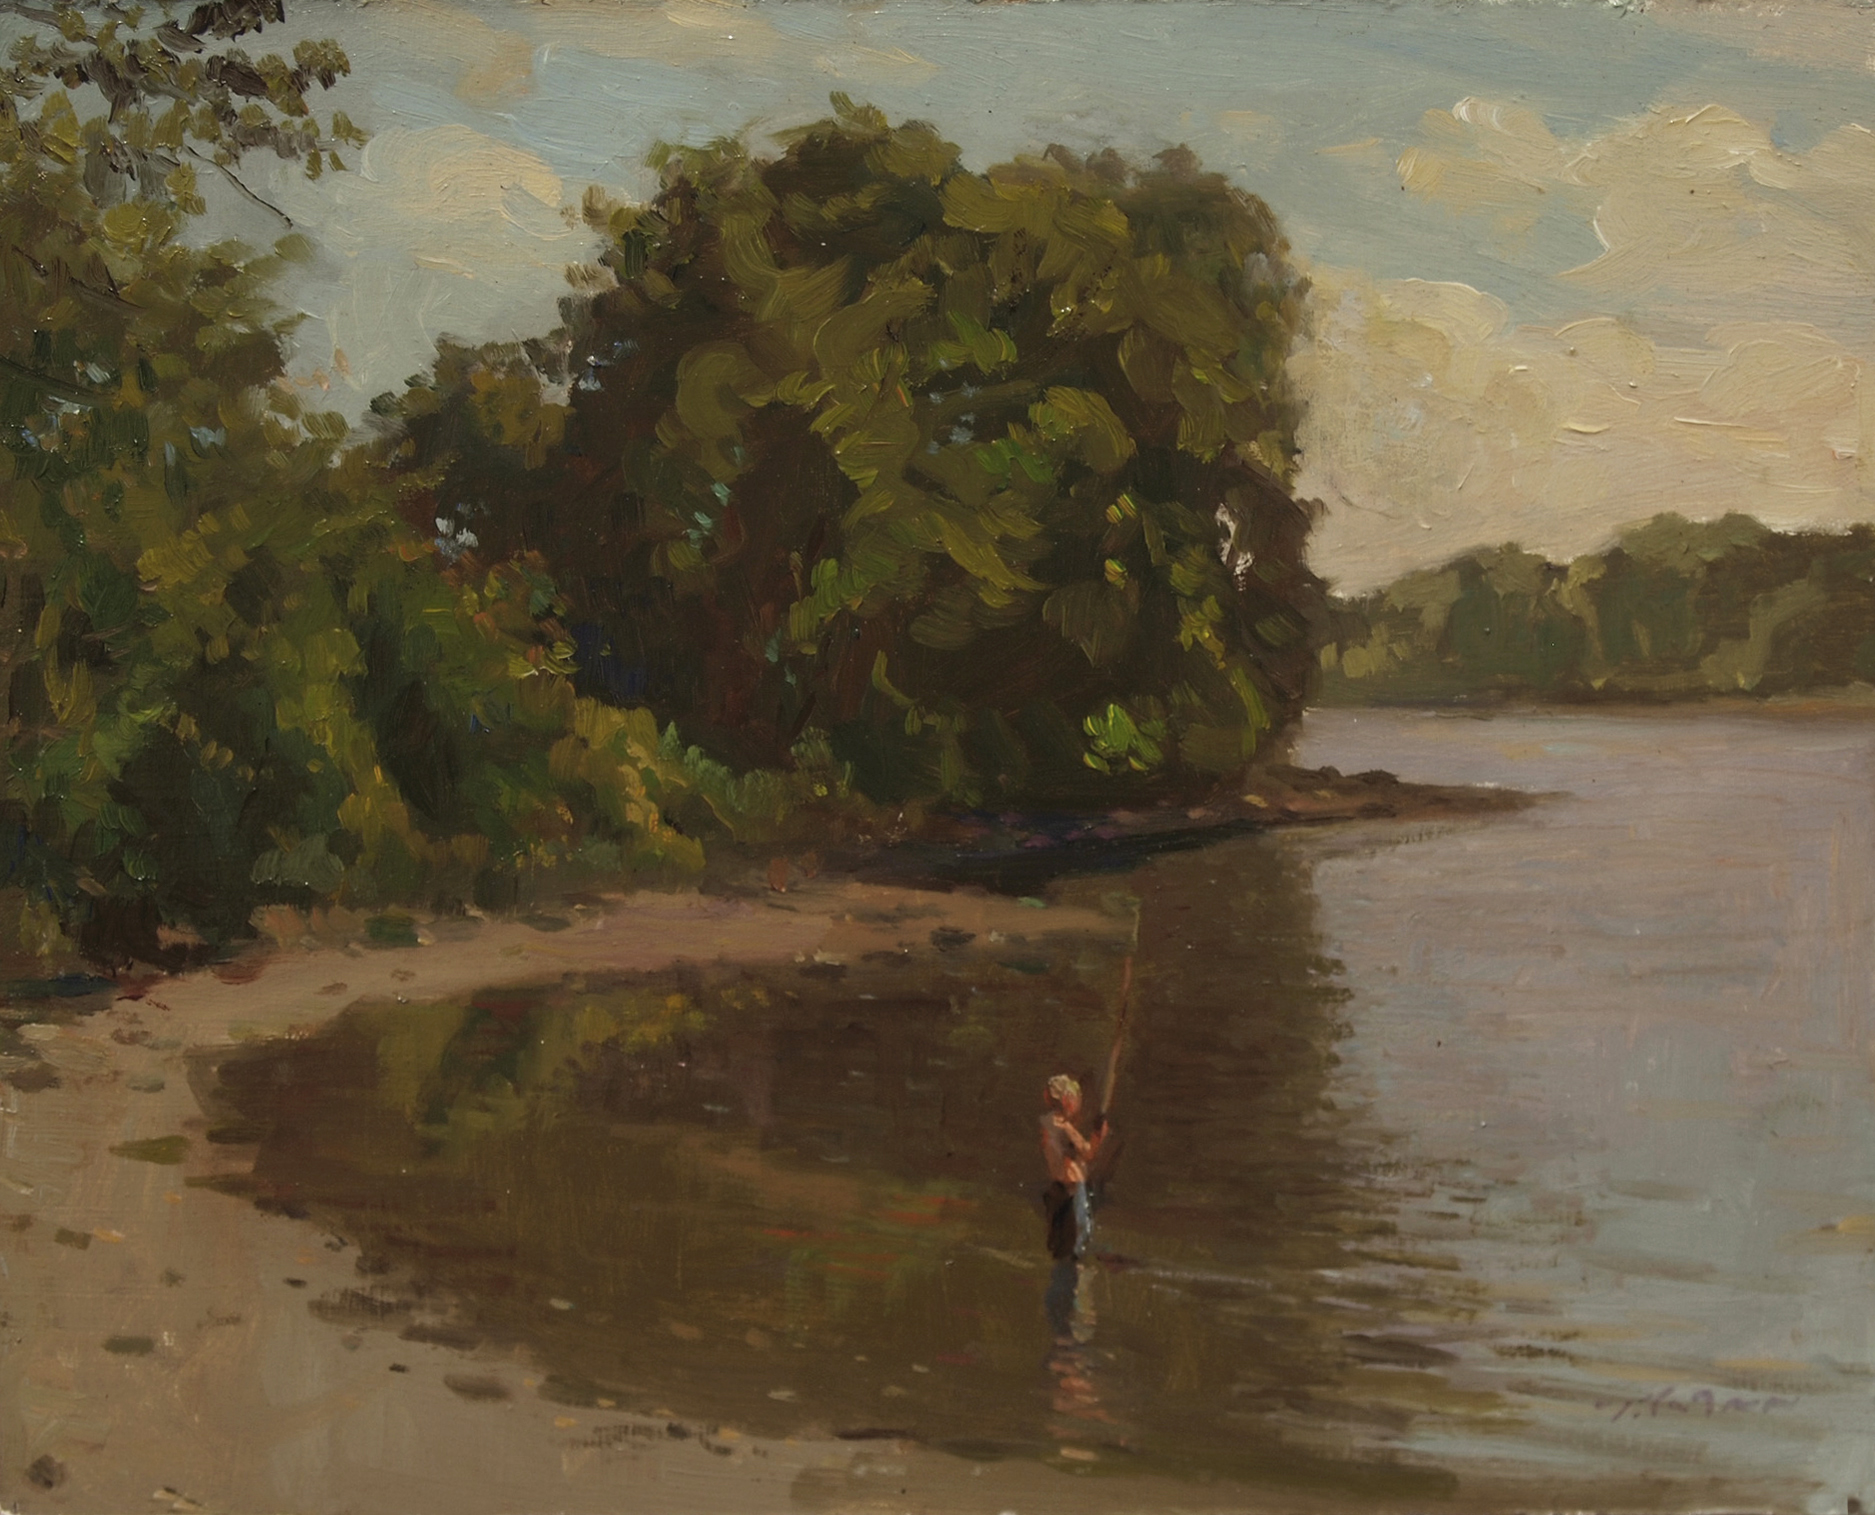 Boy Fishing, Oil on board, 8x10 inches.